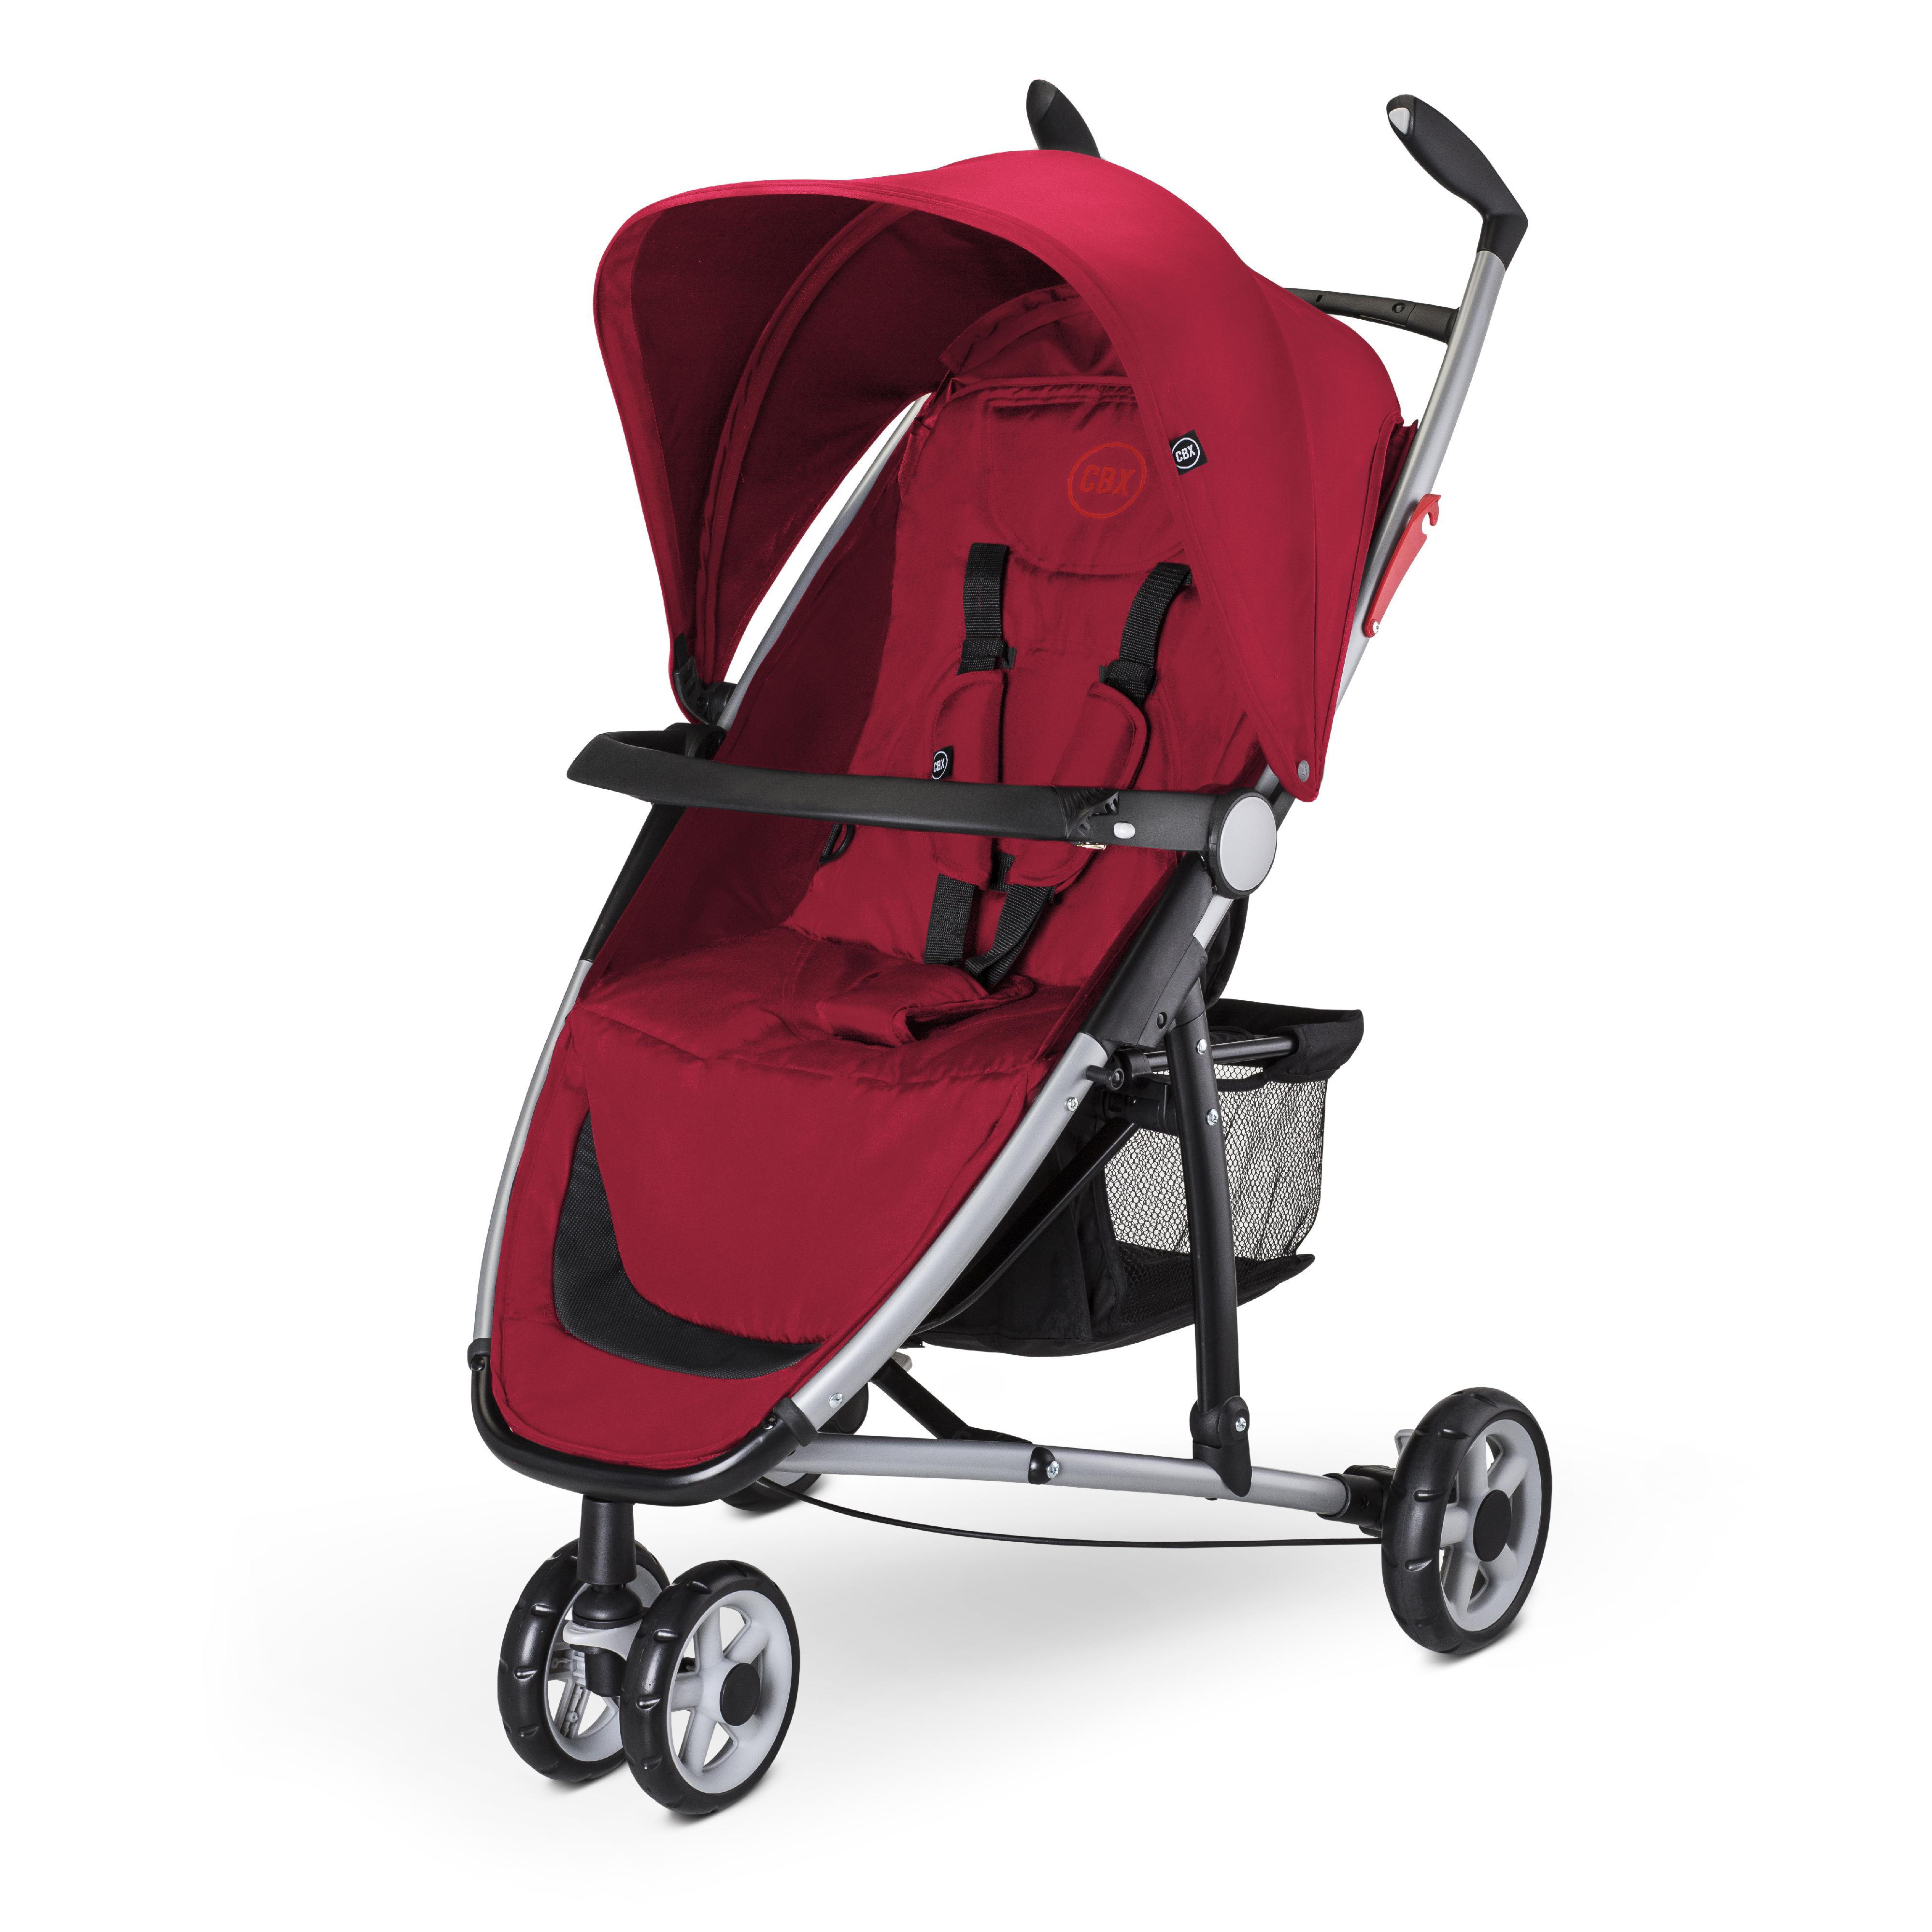 cbx by cybex lua buggy kollektion 2015 rumba red baby. Black Bedroom Furniture Sets. Home Design Ideas